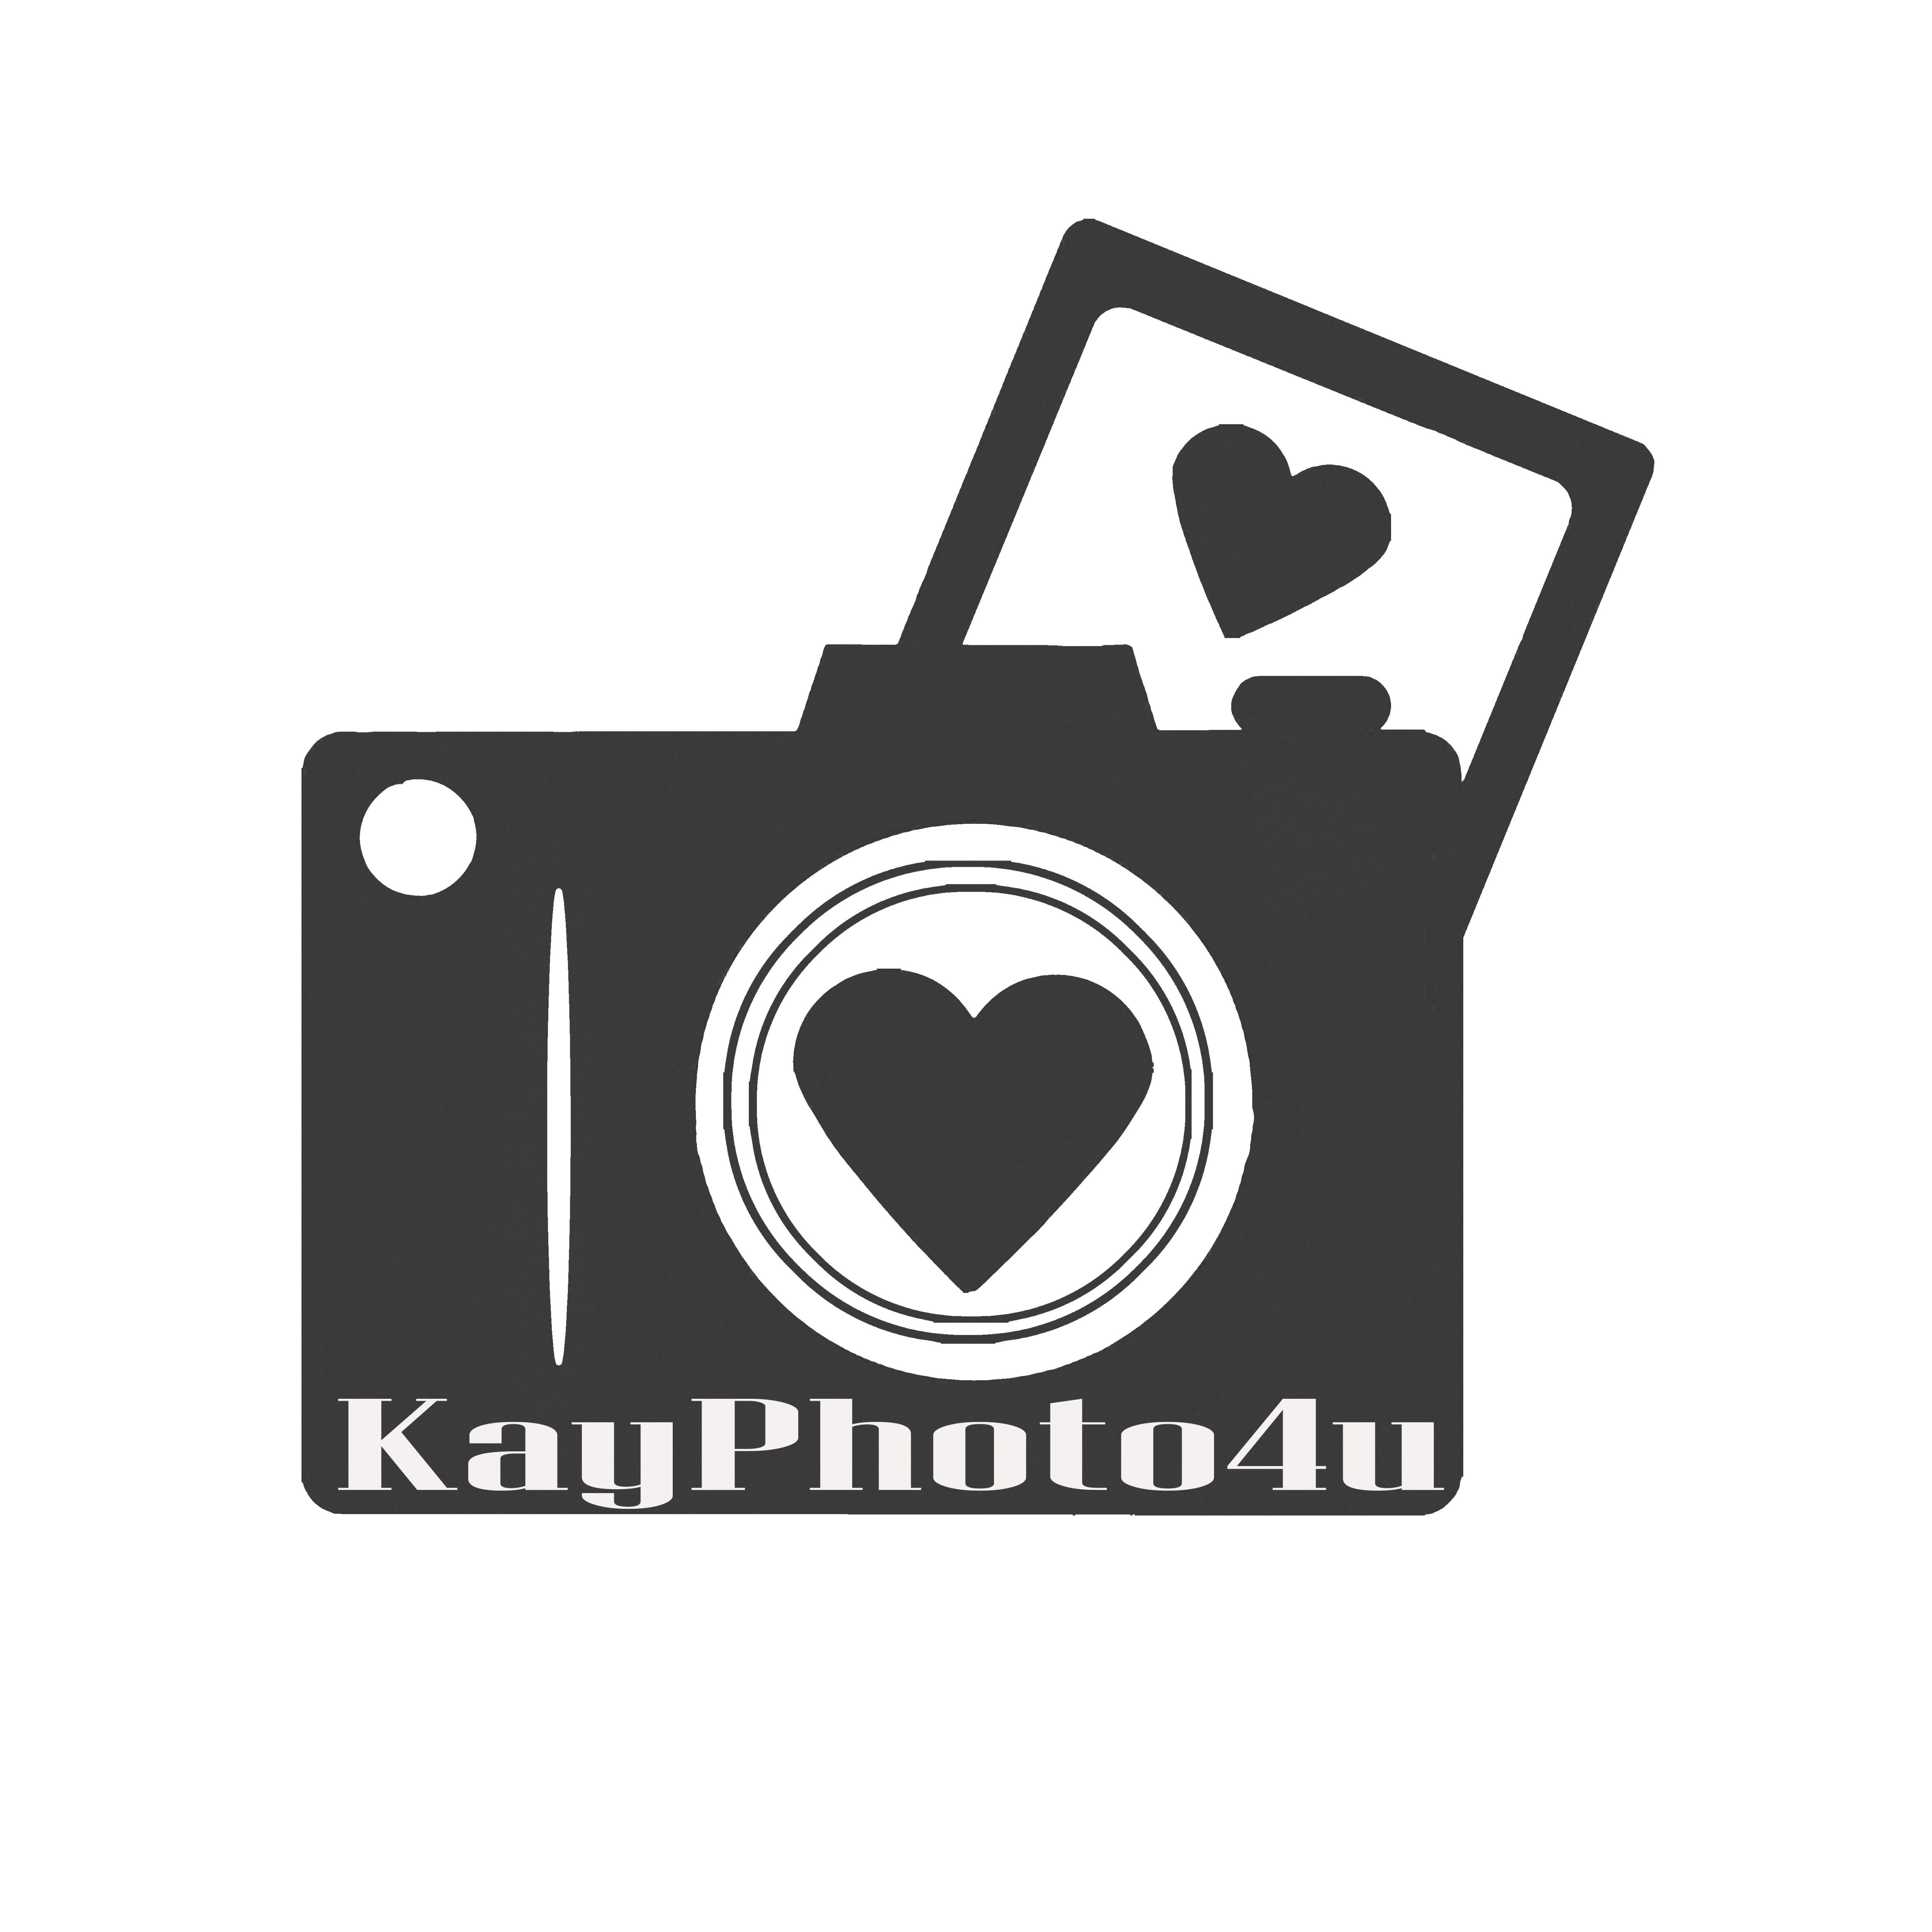 KayPhoto4u Personal Art Wedding